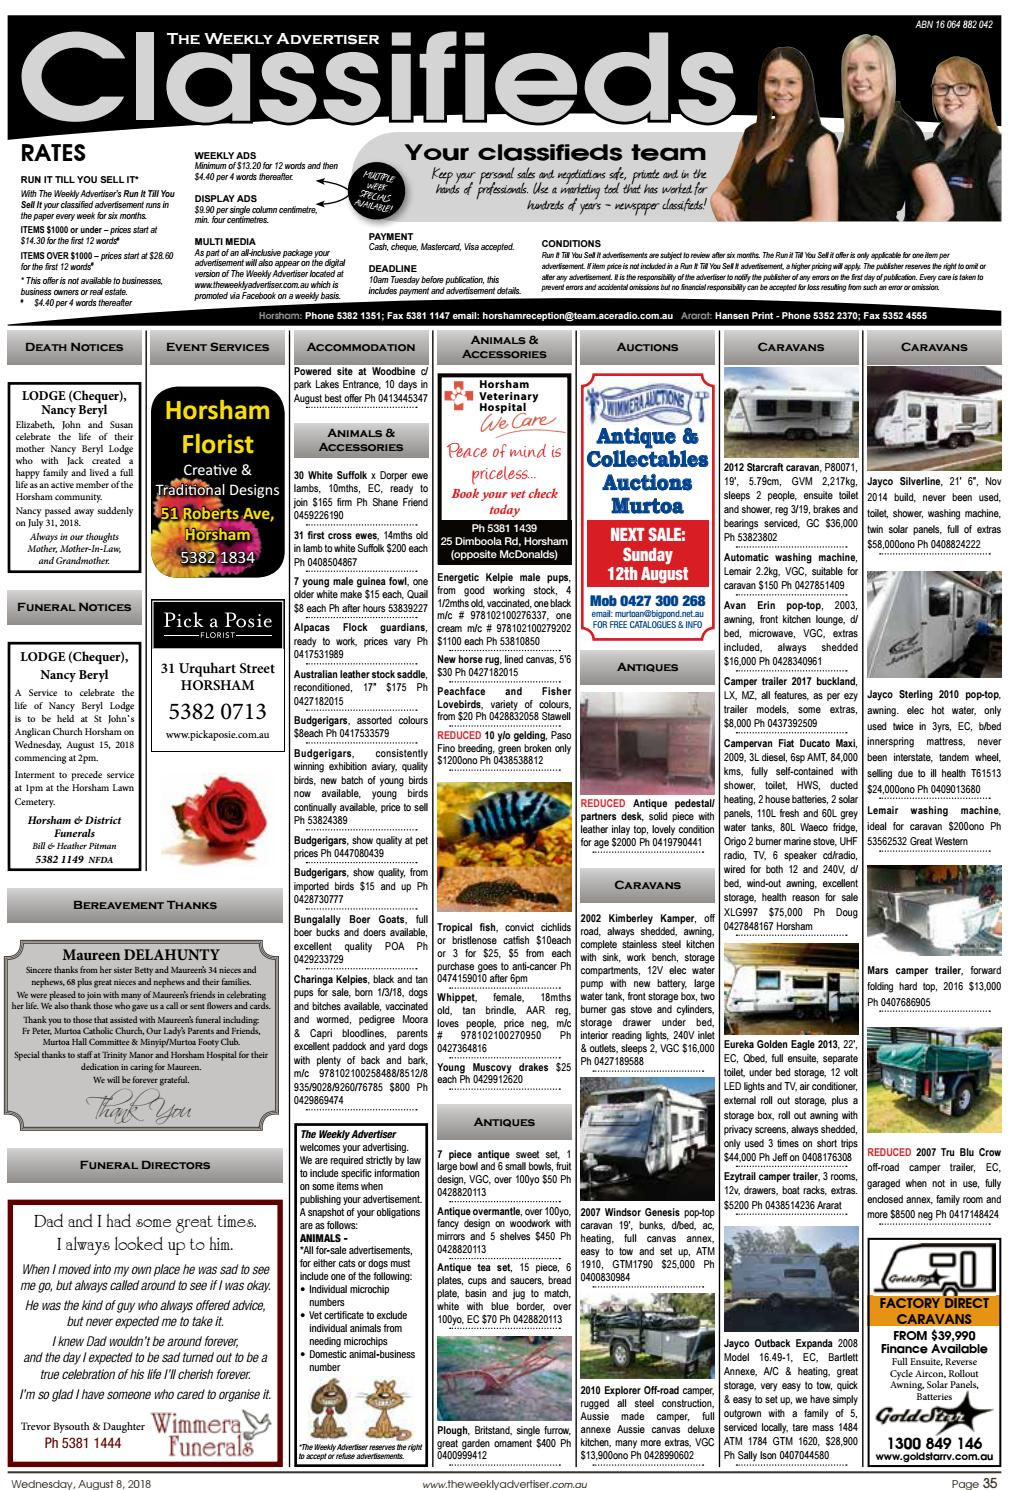 The Weekly Advertiser - Wednesday, August 8, 2018 by The